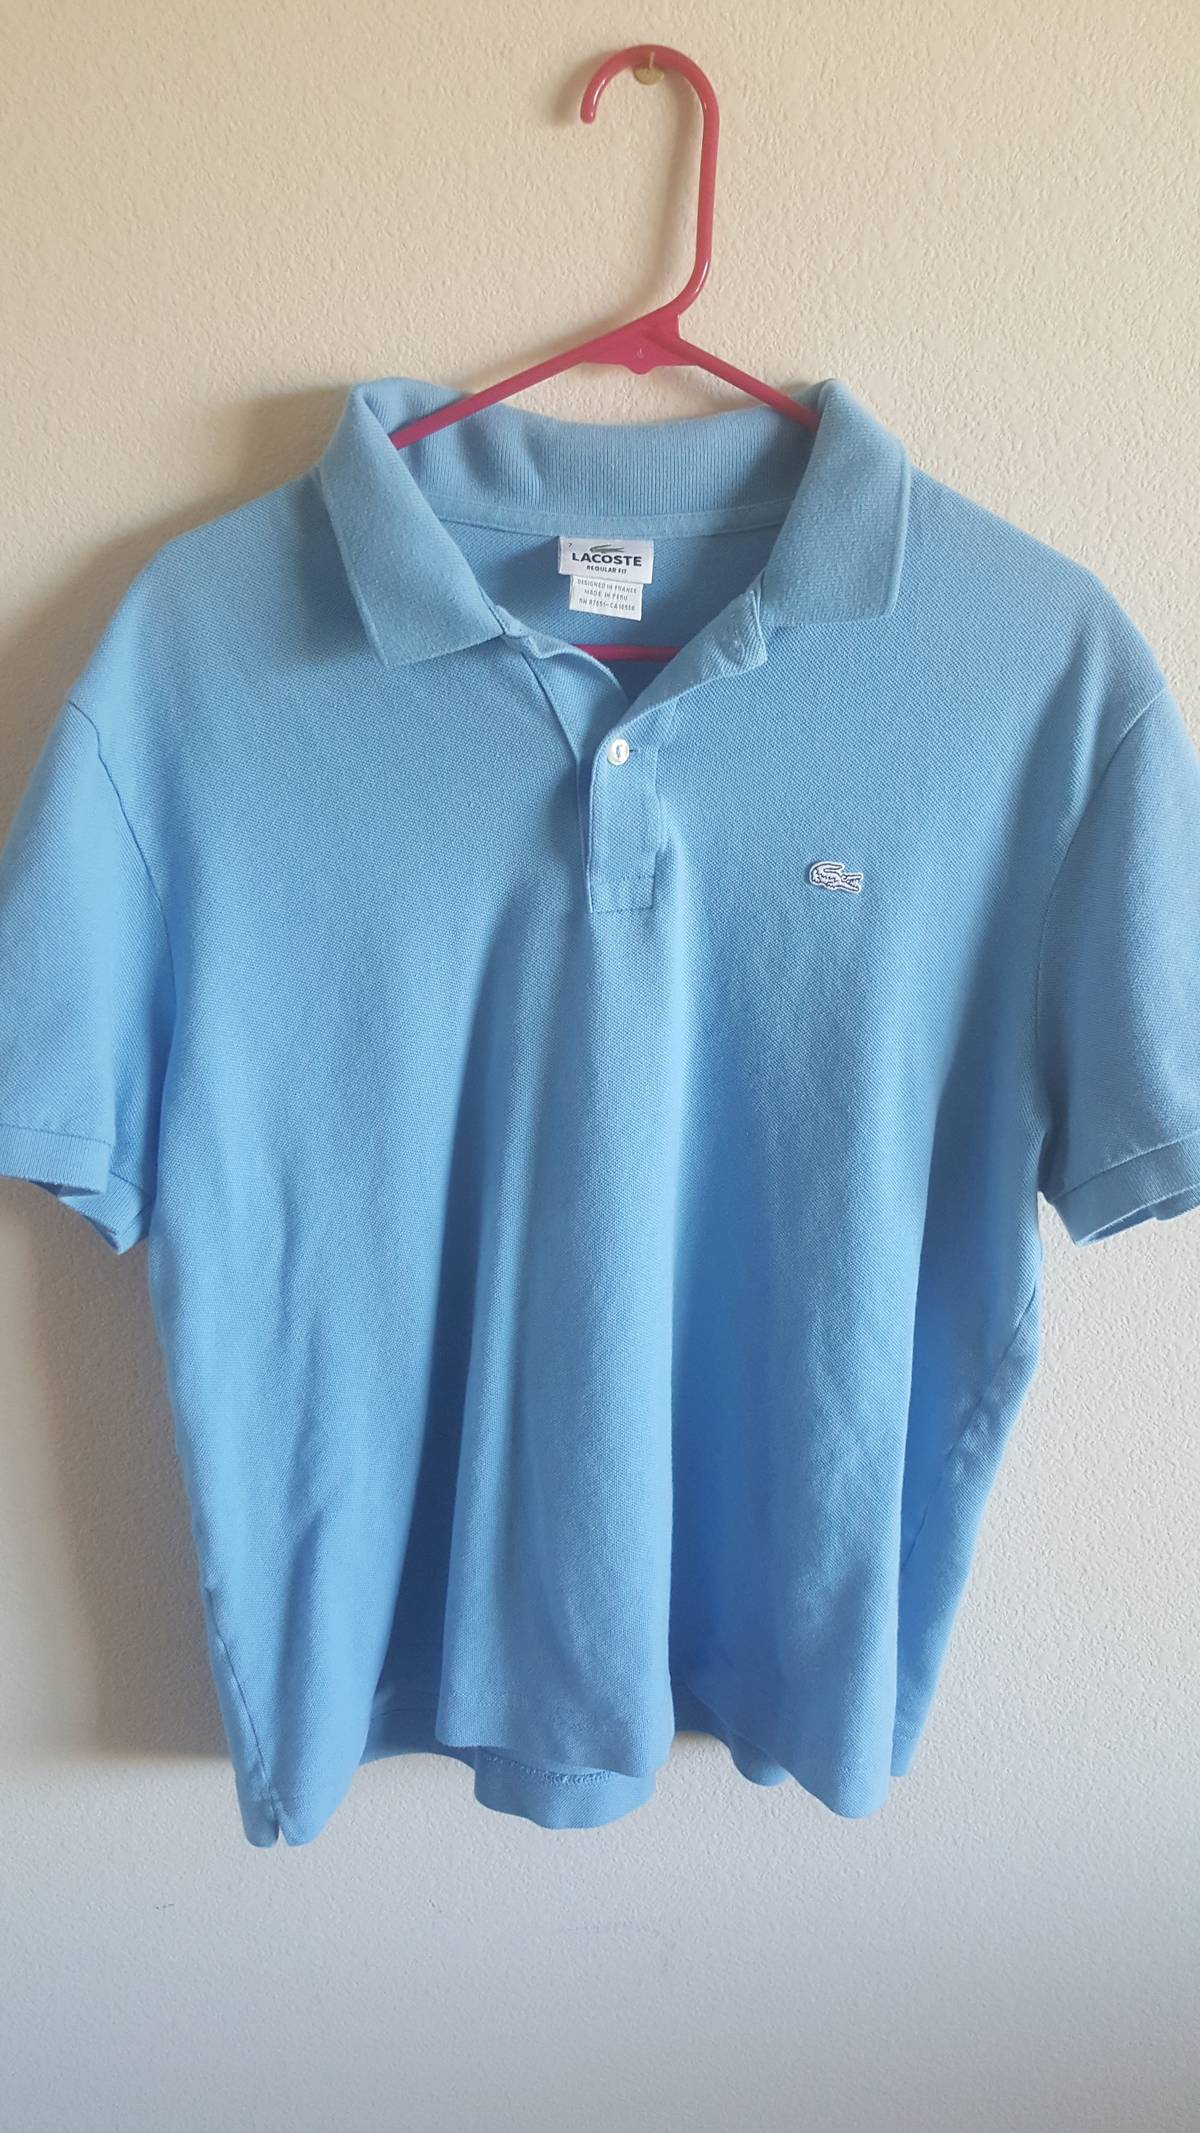 cf775ad7377 Lacoste Lacoste Nordstrom Rack polo Size l - Polos for Sale - Grailed